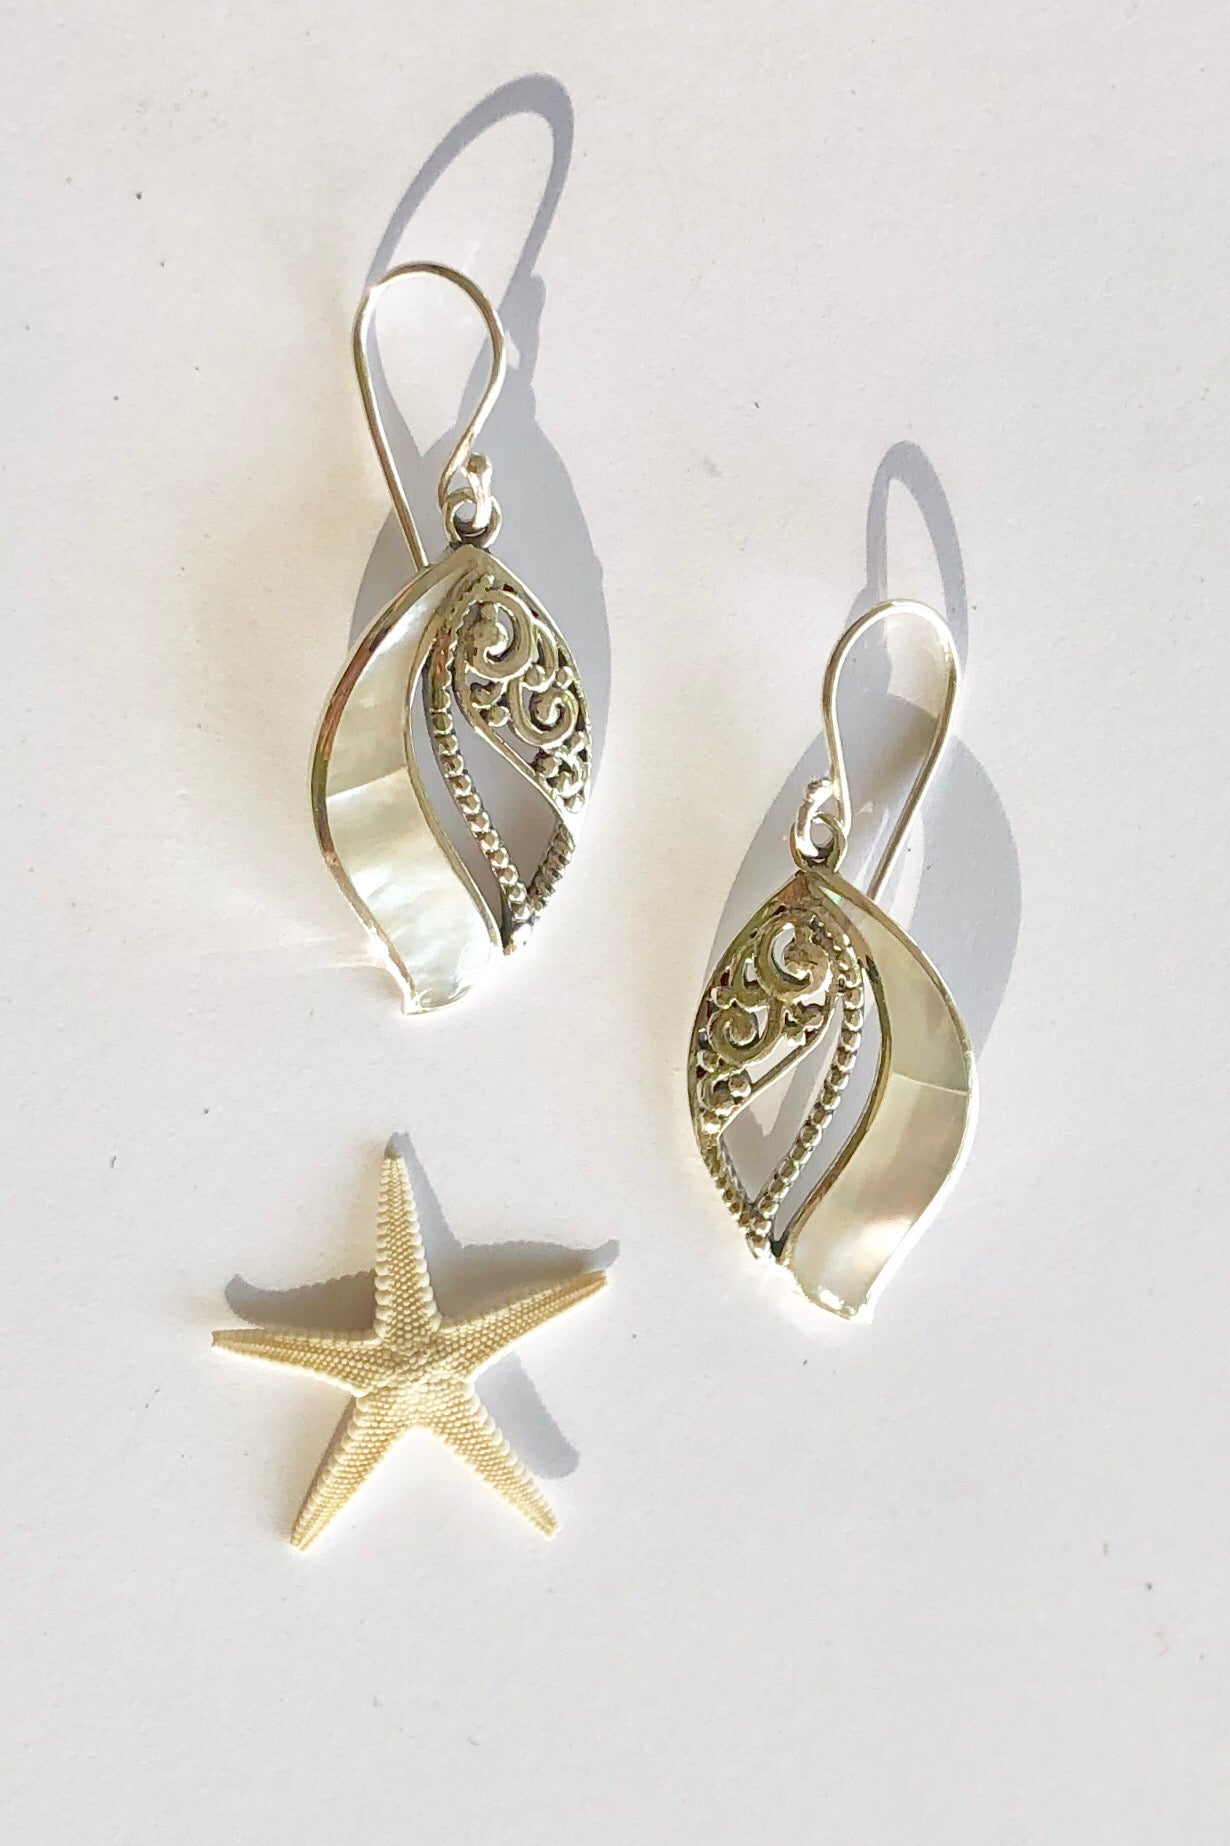 drop earrings with a 925 solid silver wave design over an iridescent Mother of Pearl.